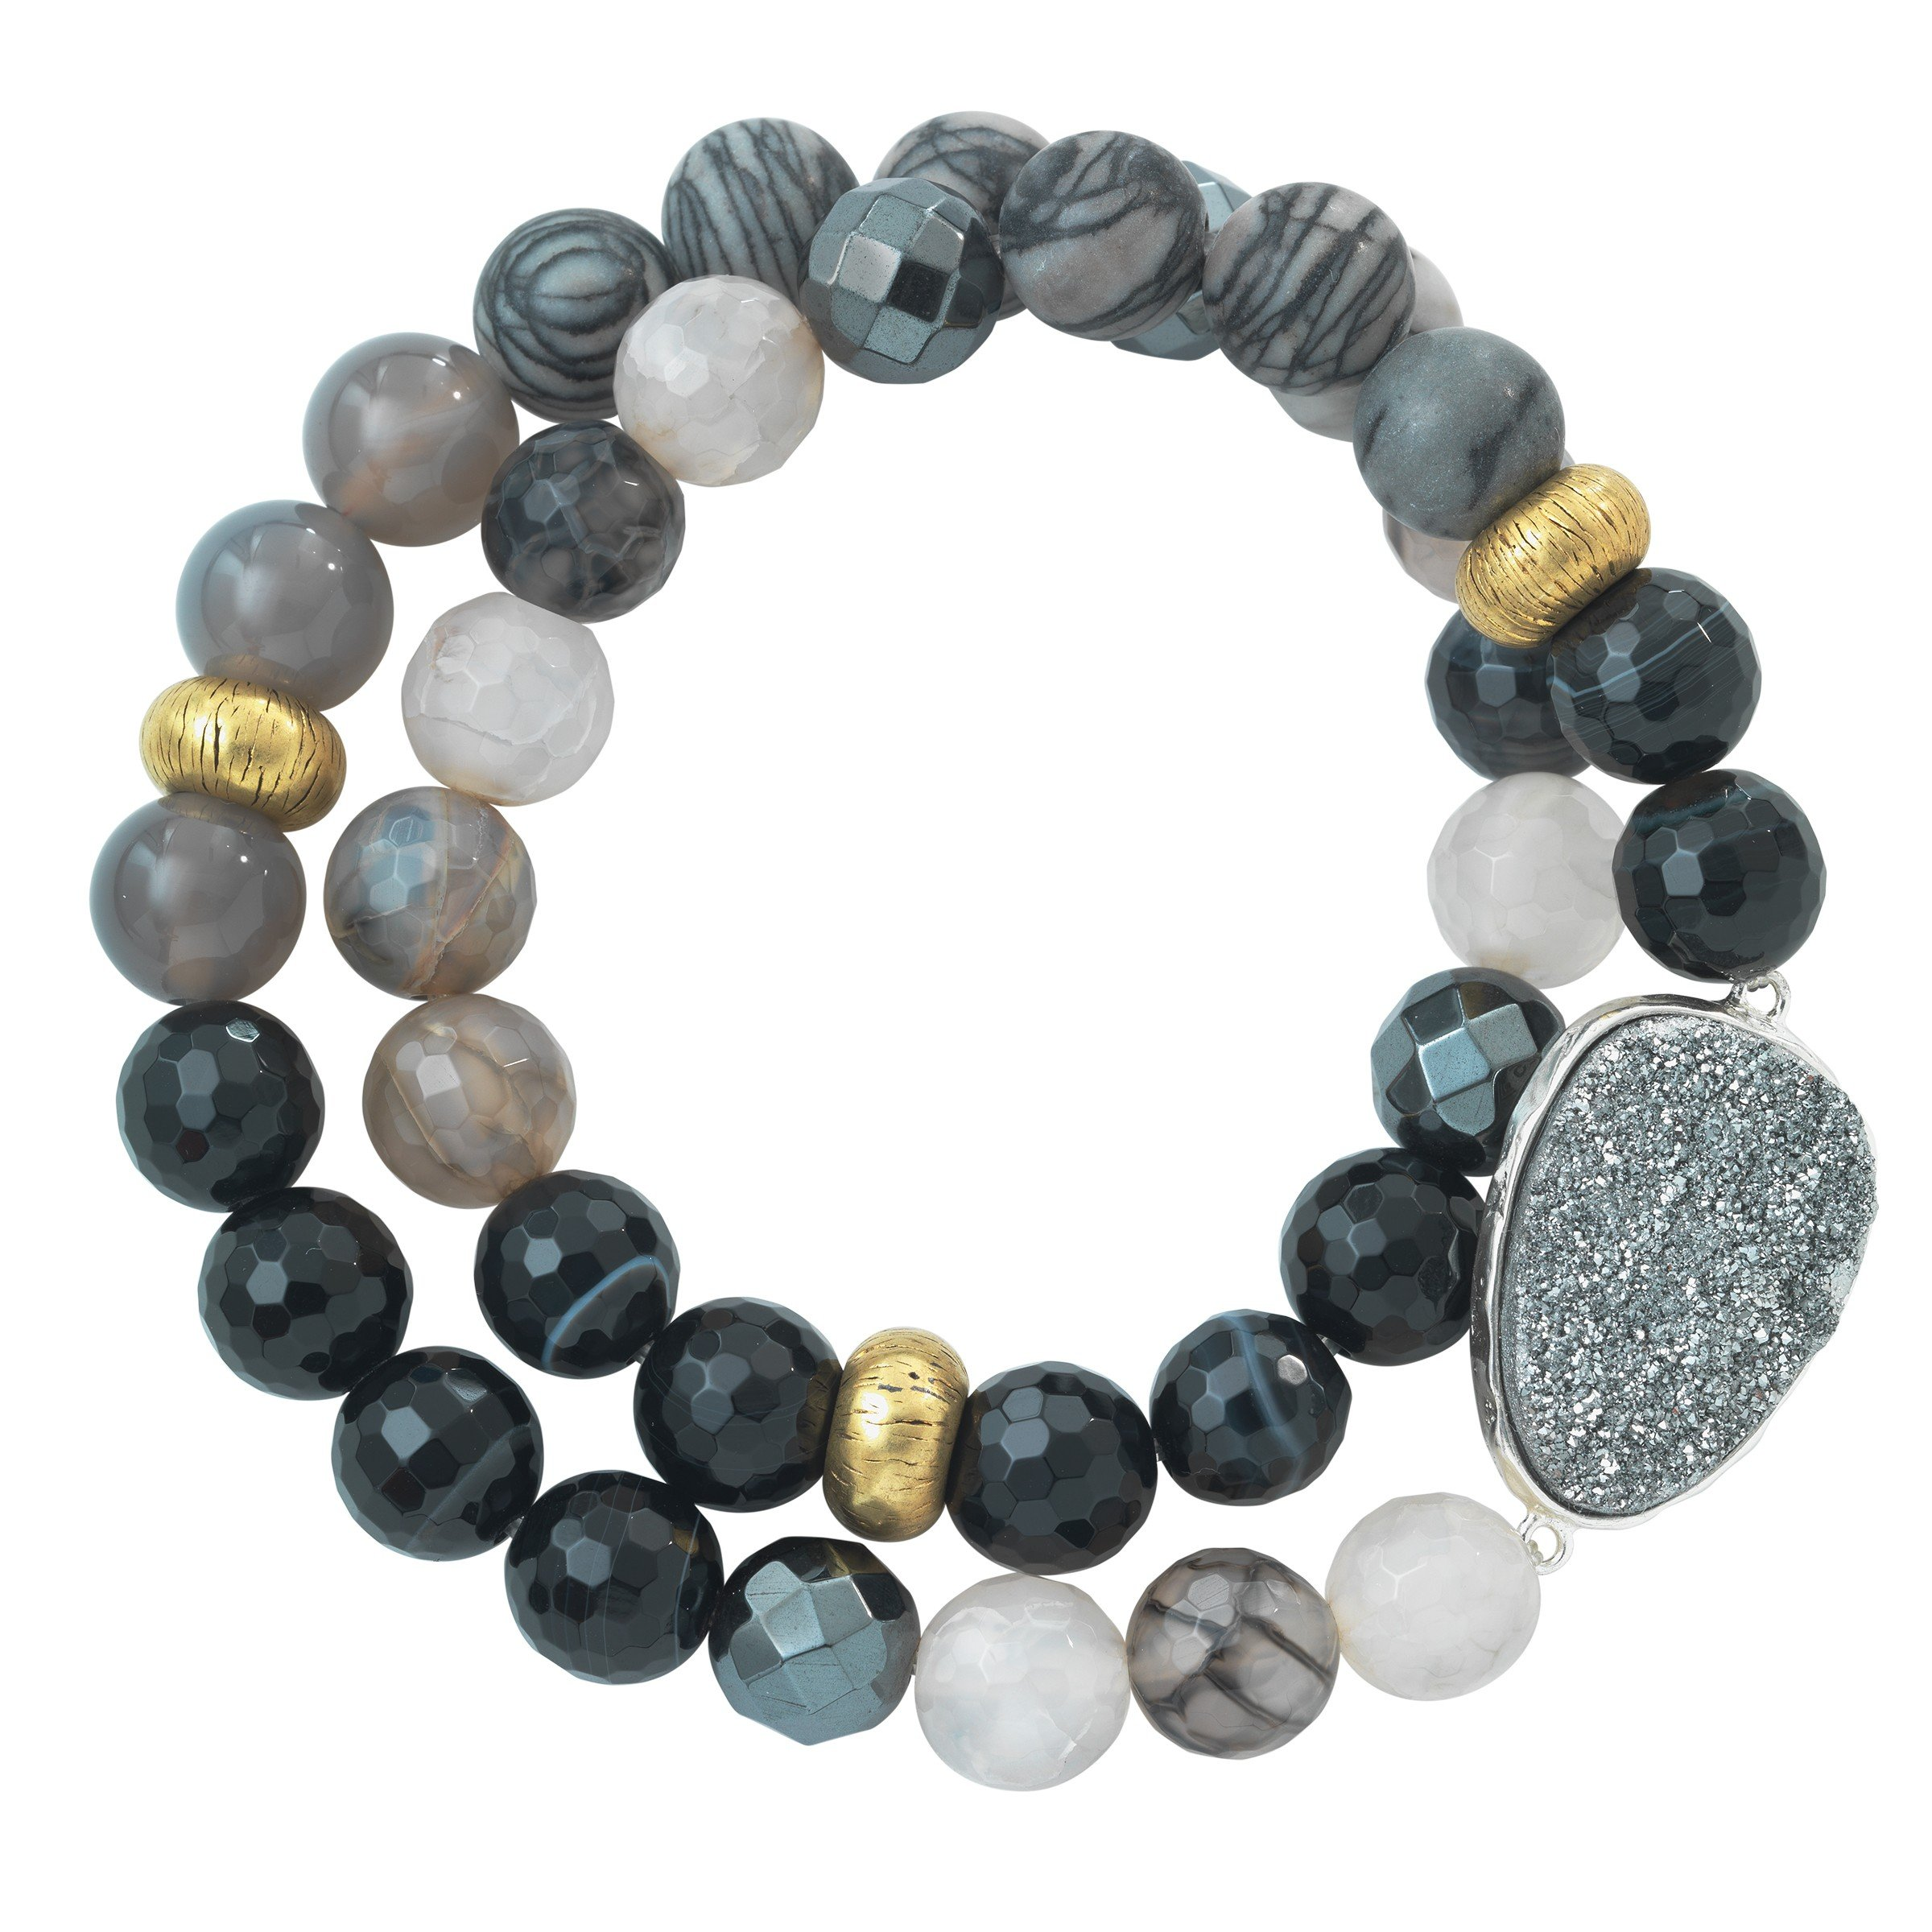 Silpada 'Ode To Geode' Natural Agate, Hematite, and Druzy Stretch Bracelet in Sterling Silver and Brass, 6.75'' by Silpada